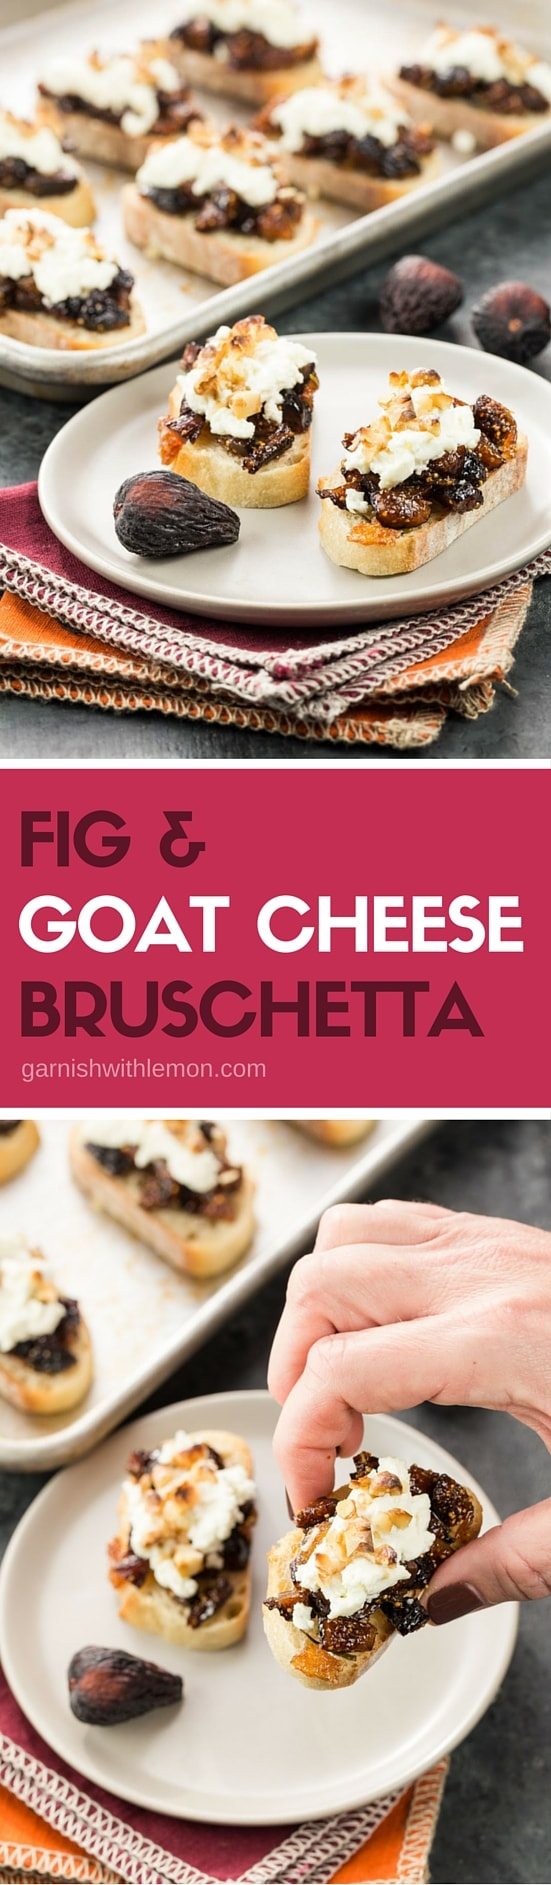 Fancy up your appetizer spread with sweet dried figs & creamy goat cheese. These easy but elegant Fig & Goat Cheese Bruschetta are sure to impress your guests.